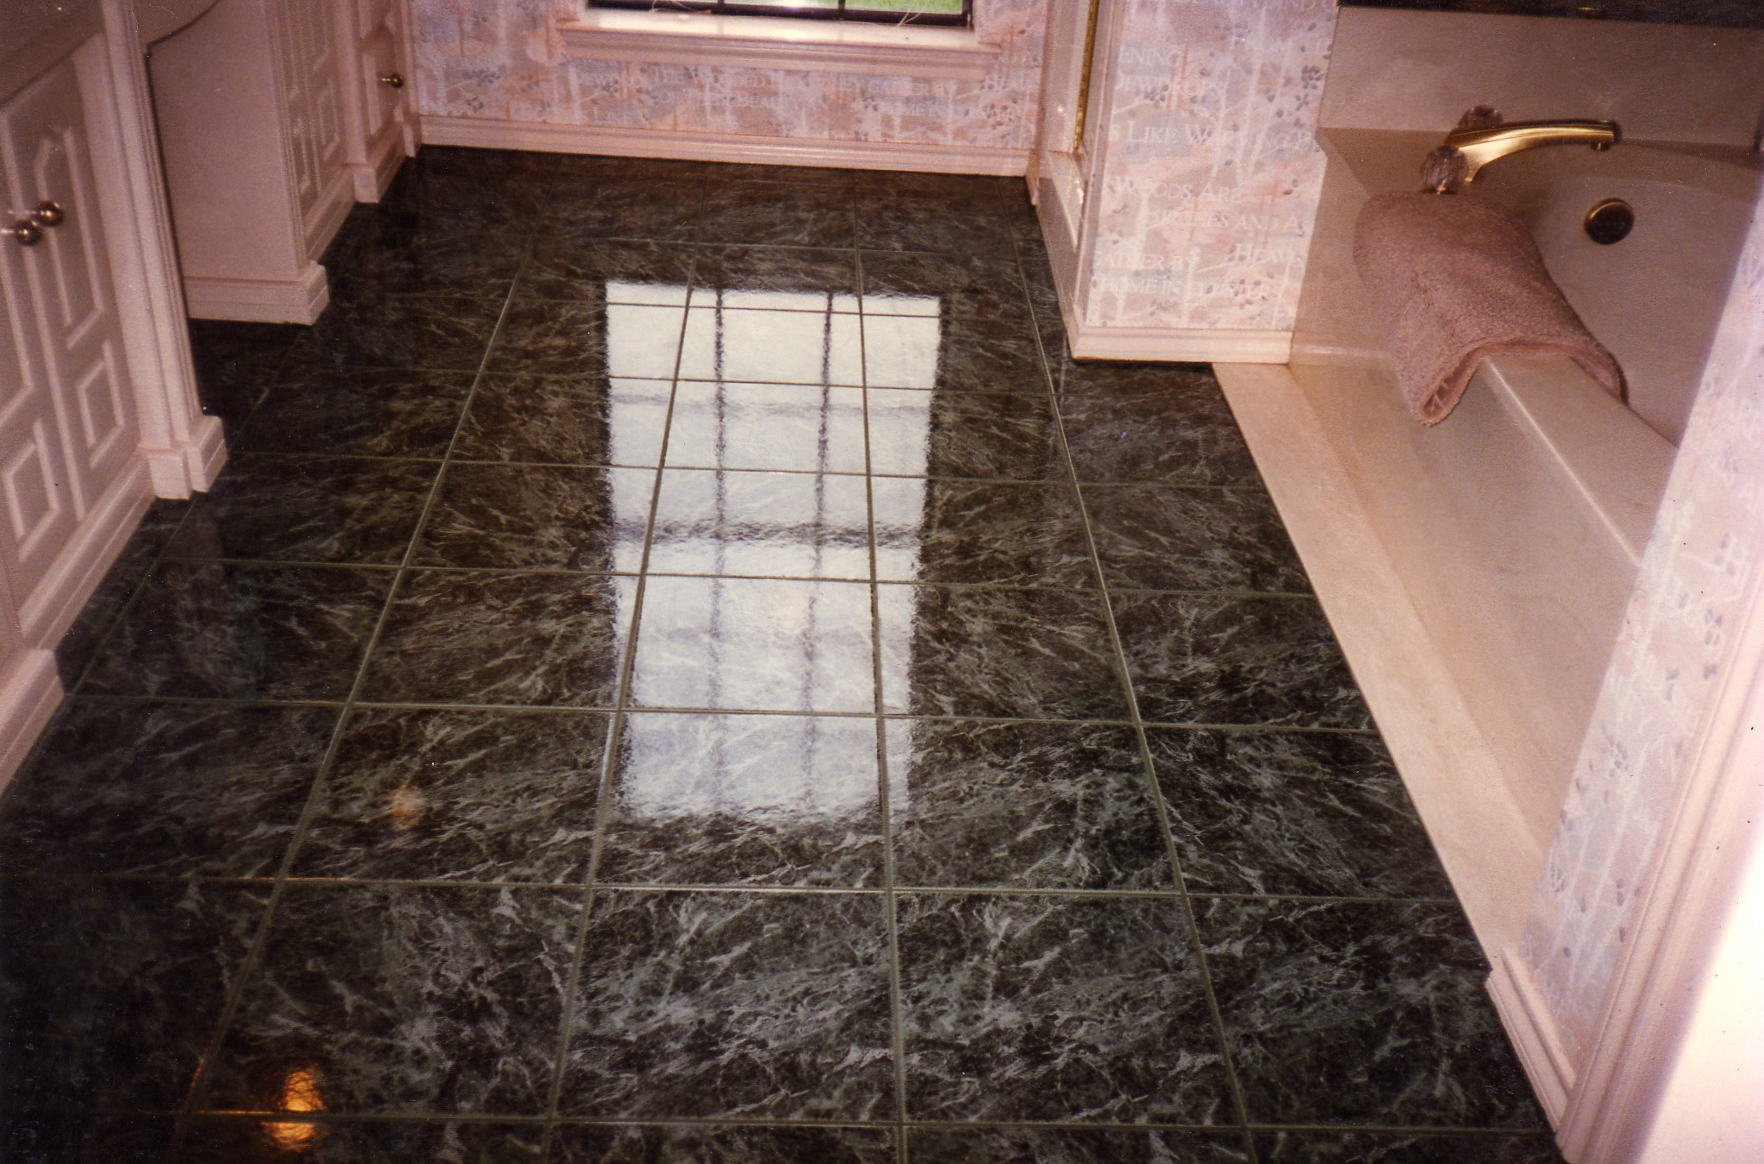 Southwest Tile Co Locations And Key Contacts Proview